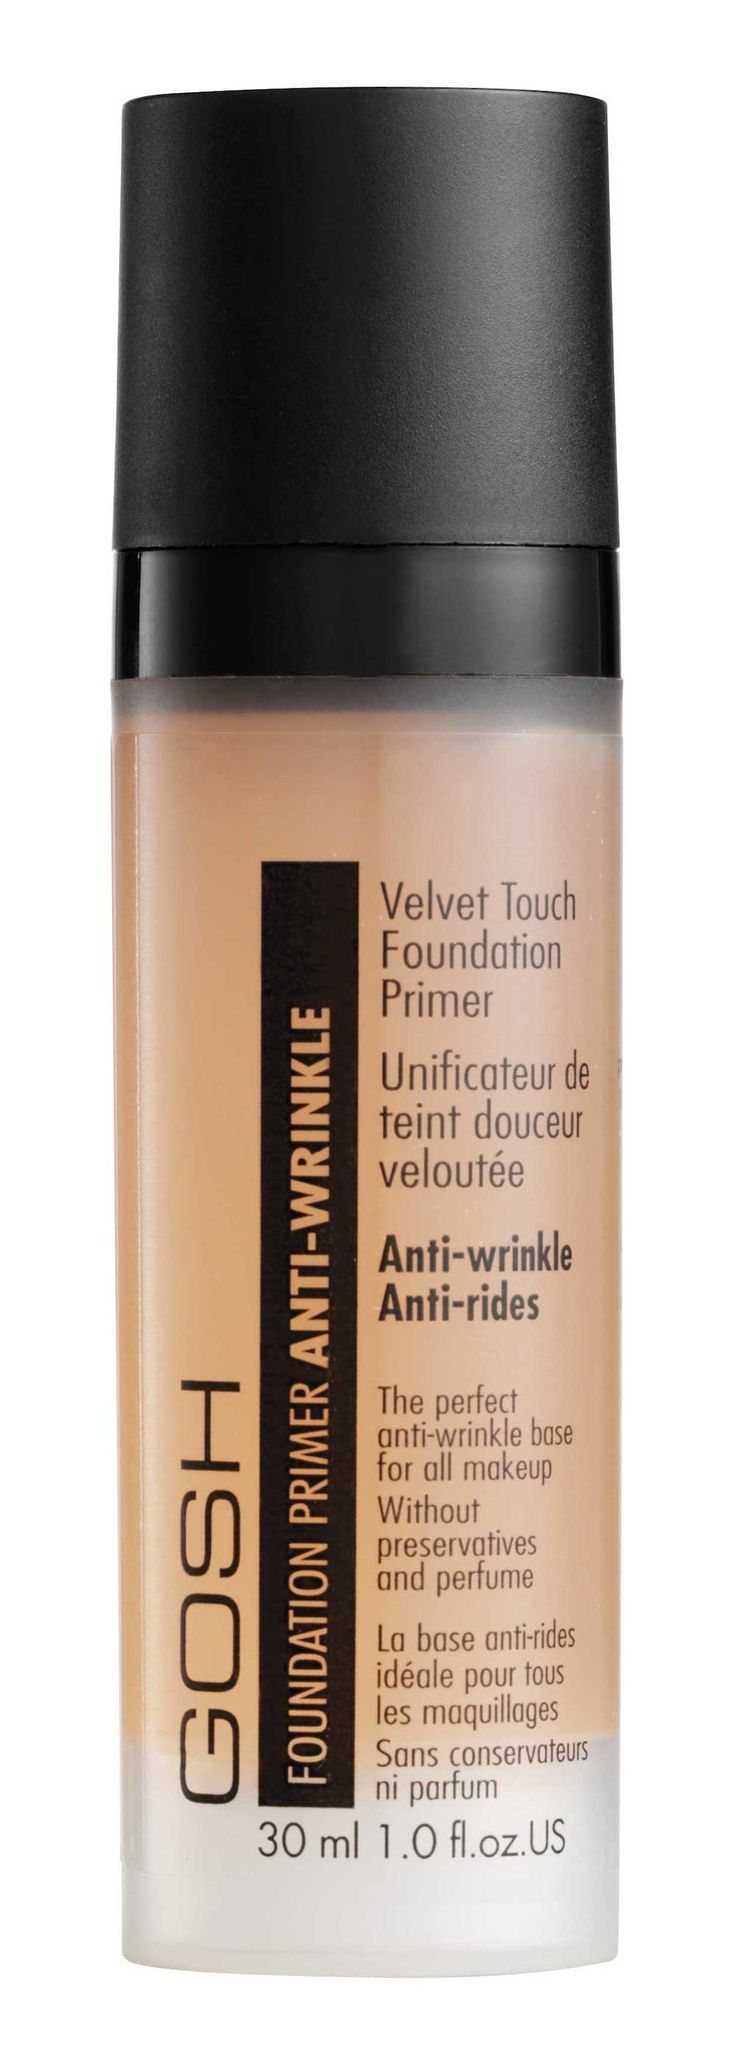 GOSH Velvet Touch Foundation Primer Anti-Wrinkle is the perfect base for all makeup. Contains Matrixyl3000 – a face firming peptide, which boosts the collagen fibers and hereby improves the natural elasticity of the skin. Fills in deep pores and fine lines. Creates a uniform, matt and silky soft surface. 30 ml